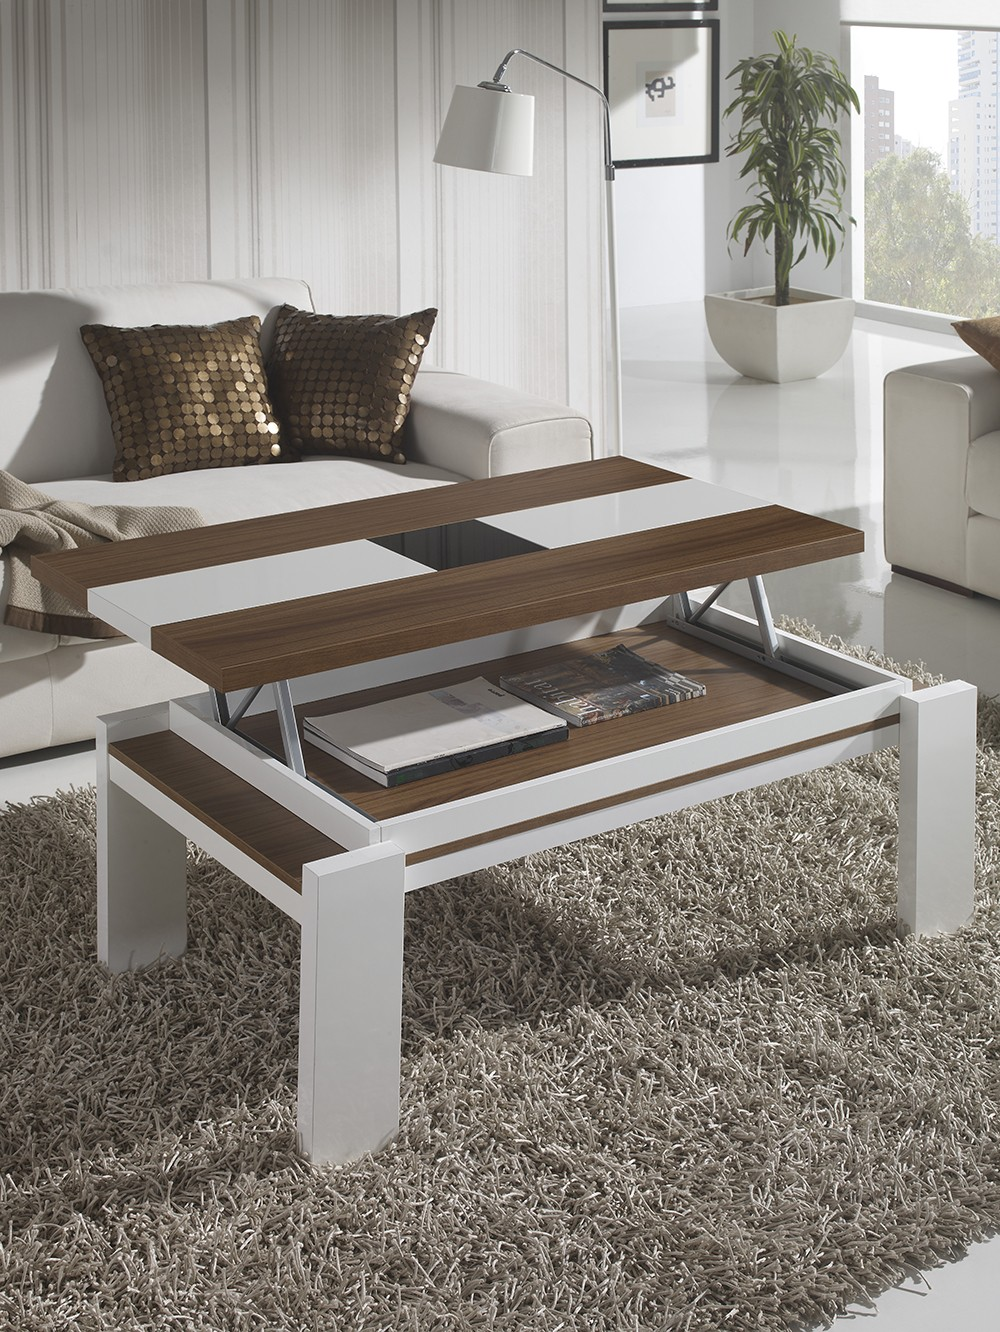 Table basse qui devient haute - Table basse transformable en table haute ikea ...